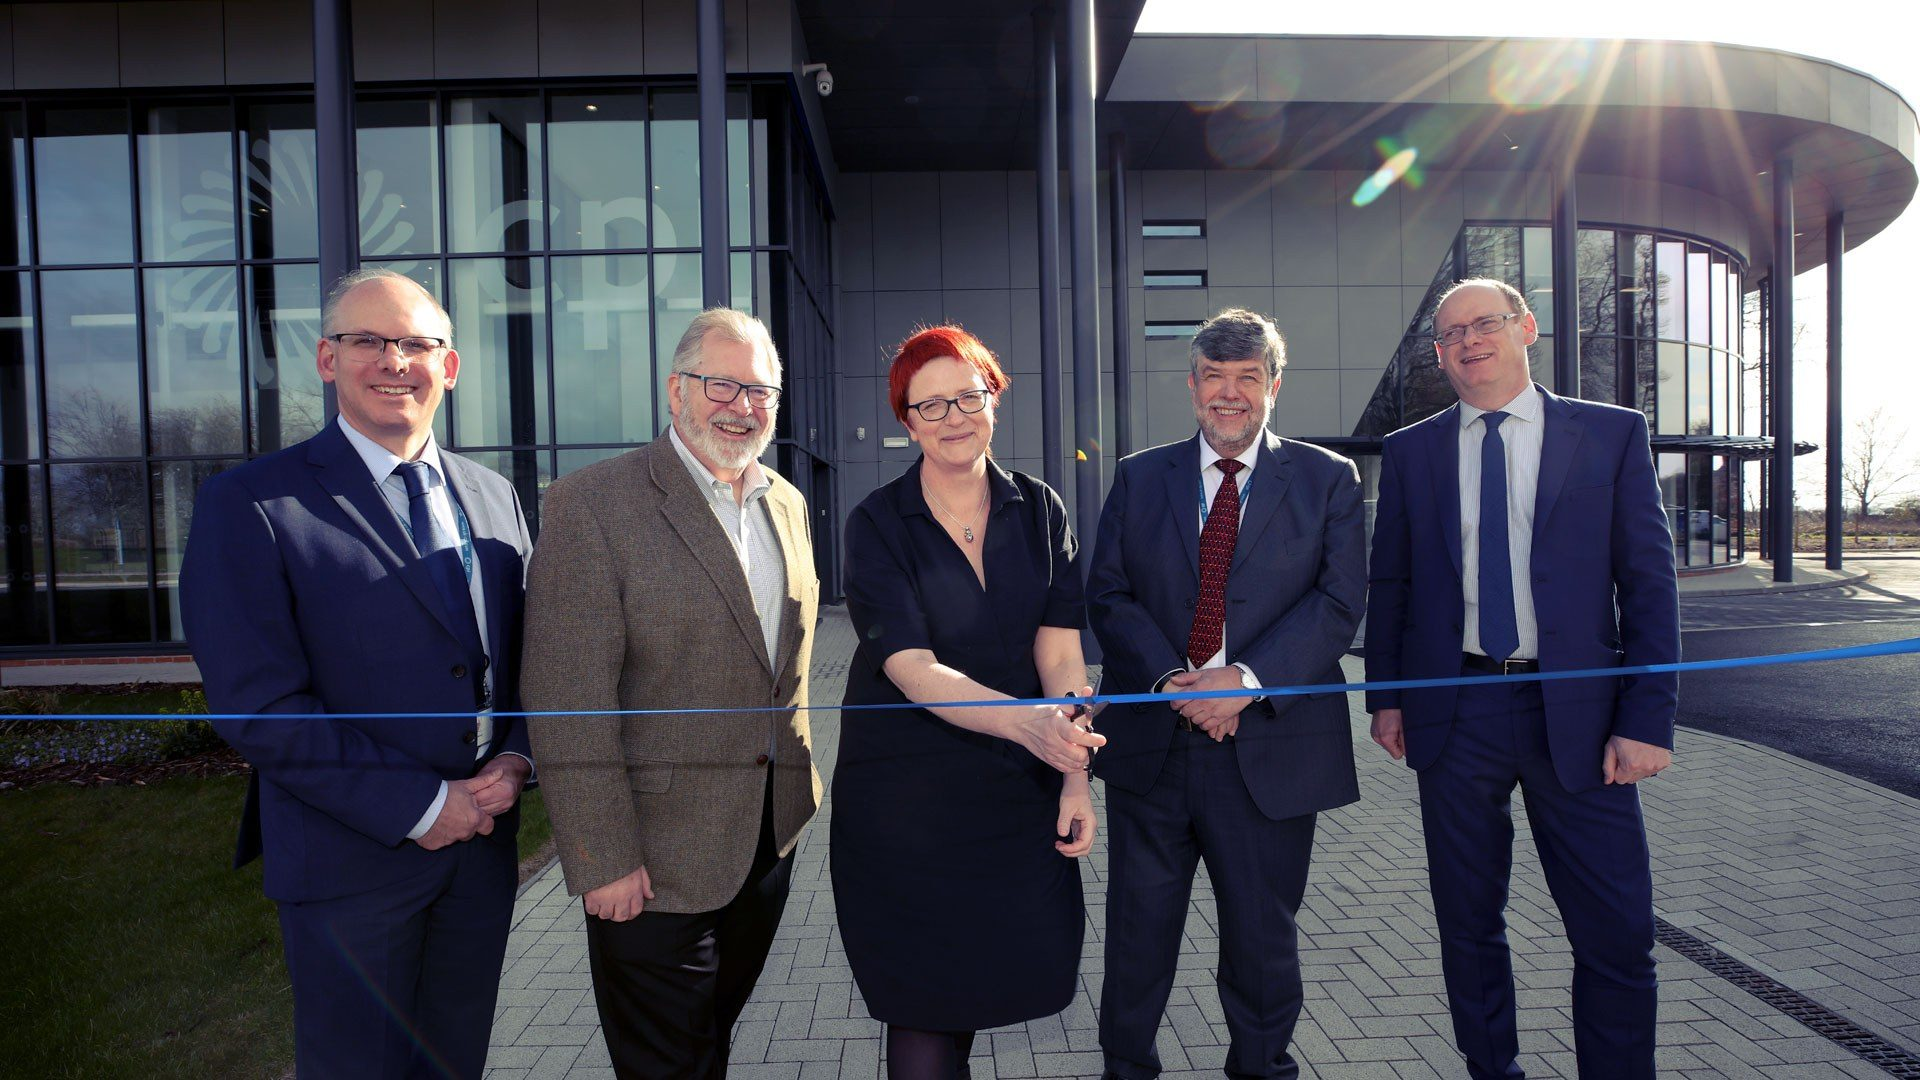 Ribbon cutting outside the new centre: l-r Tom Harvey, Healthcare Photonics Lead at CPI; Paul Goodwin, GE Healthcare Science Director and external advisory board member; Anke Lohmann, Chair of the External Advisory Board; Nigel Perry CEO of CPI, Alan Welby, Innovation Director at North East Local Enterprise Partnership.